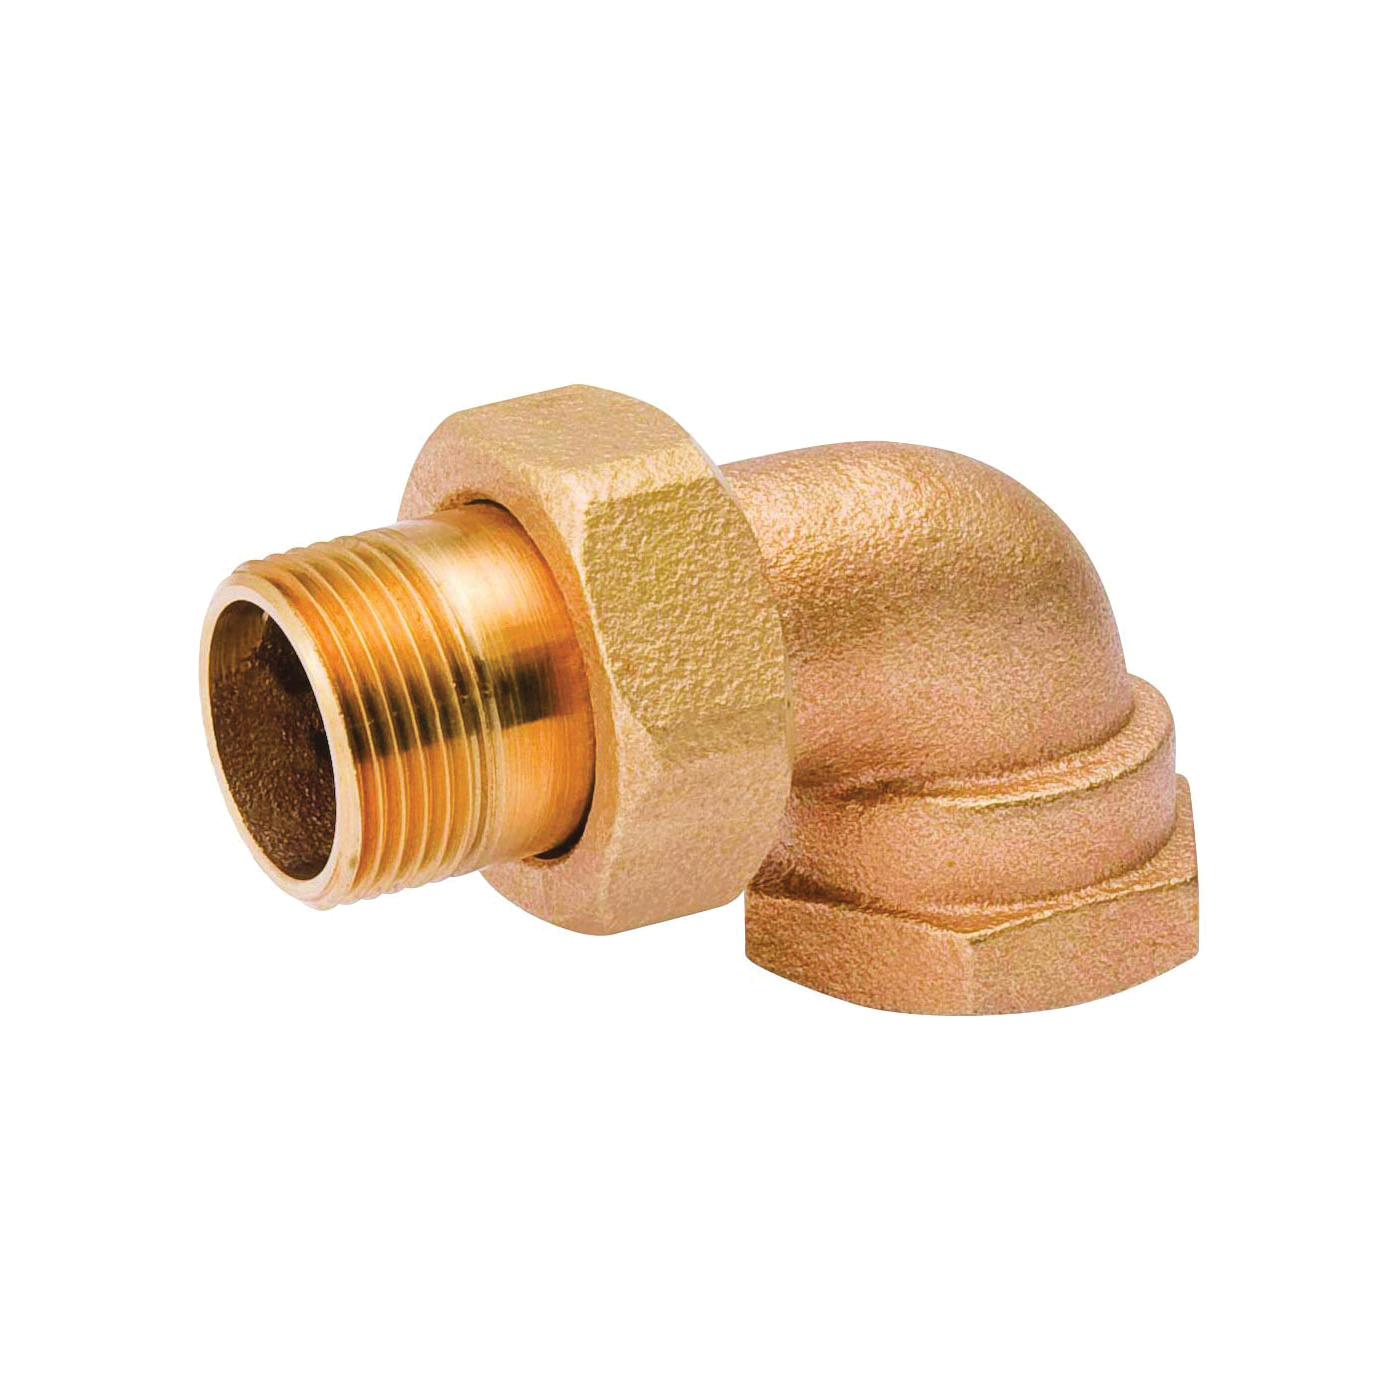 Picture of B & K 109-384 Radiator Elbow Nut and Tailpiece, Brass